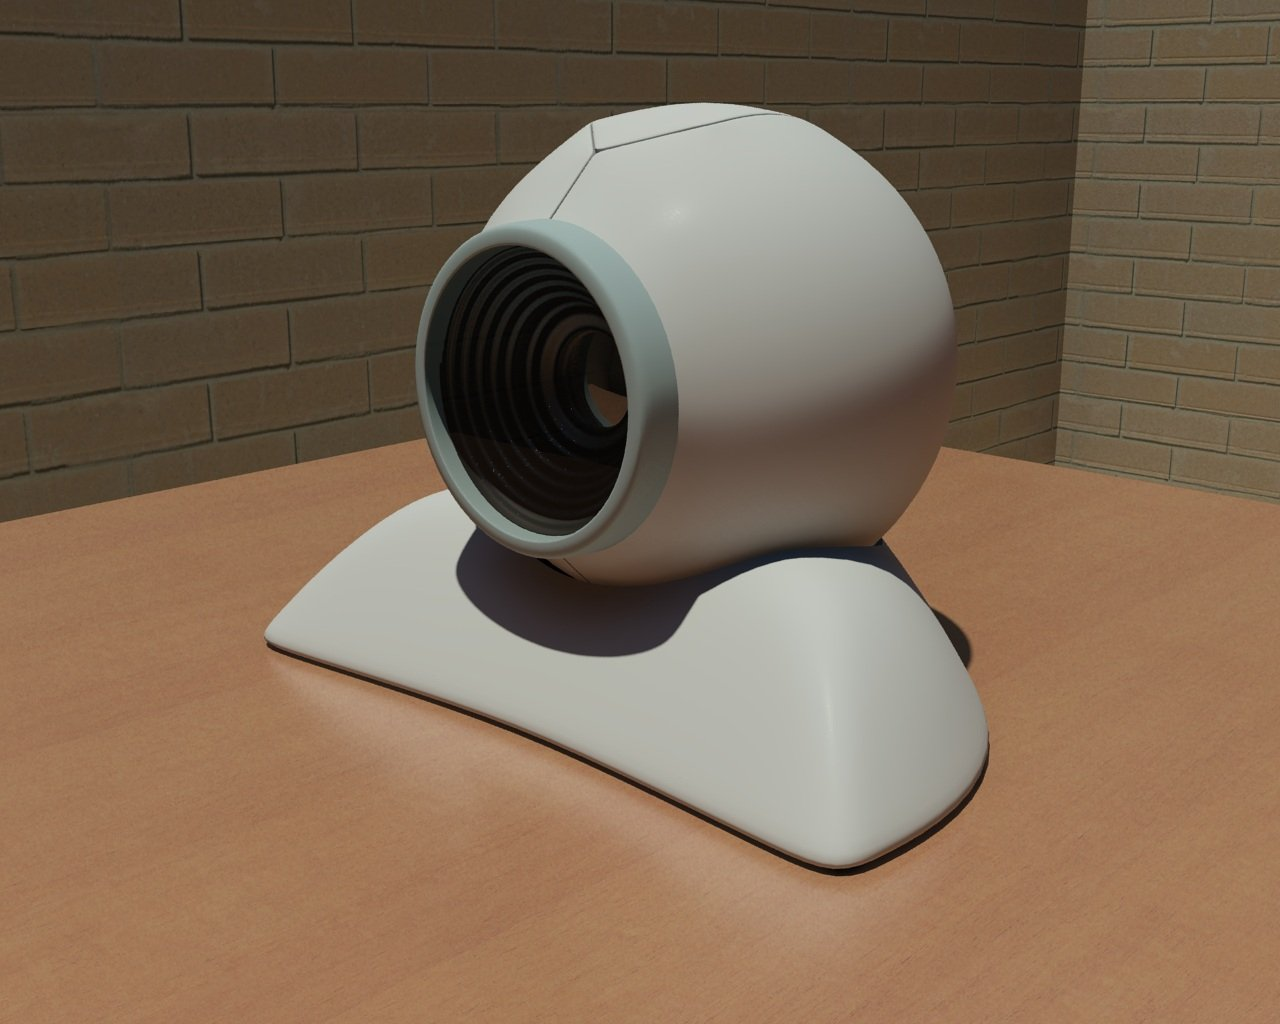 3D Wireless web camera model